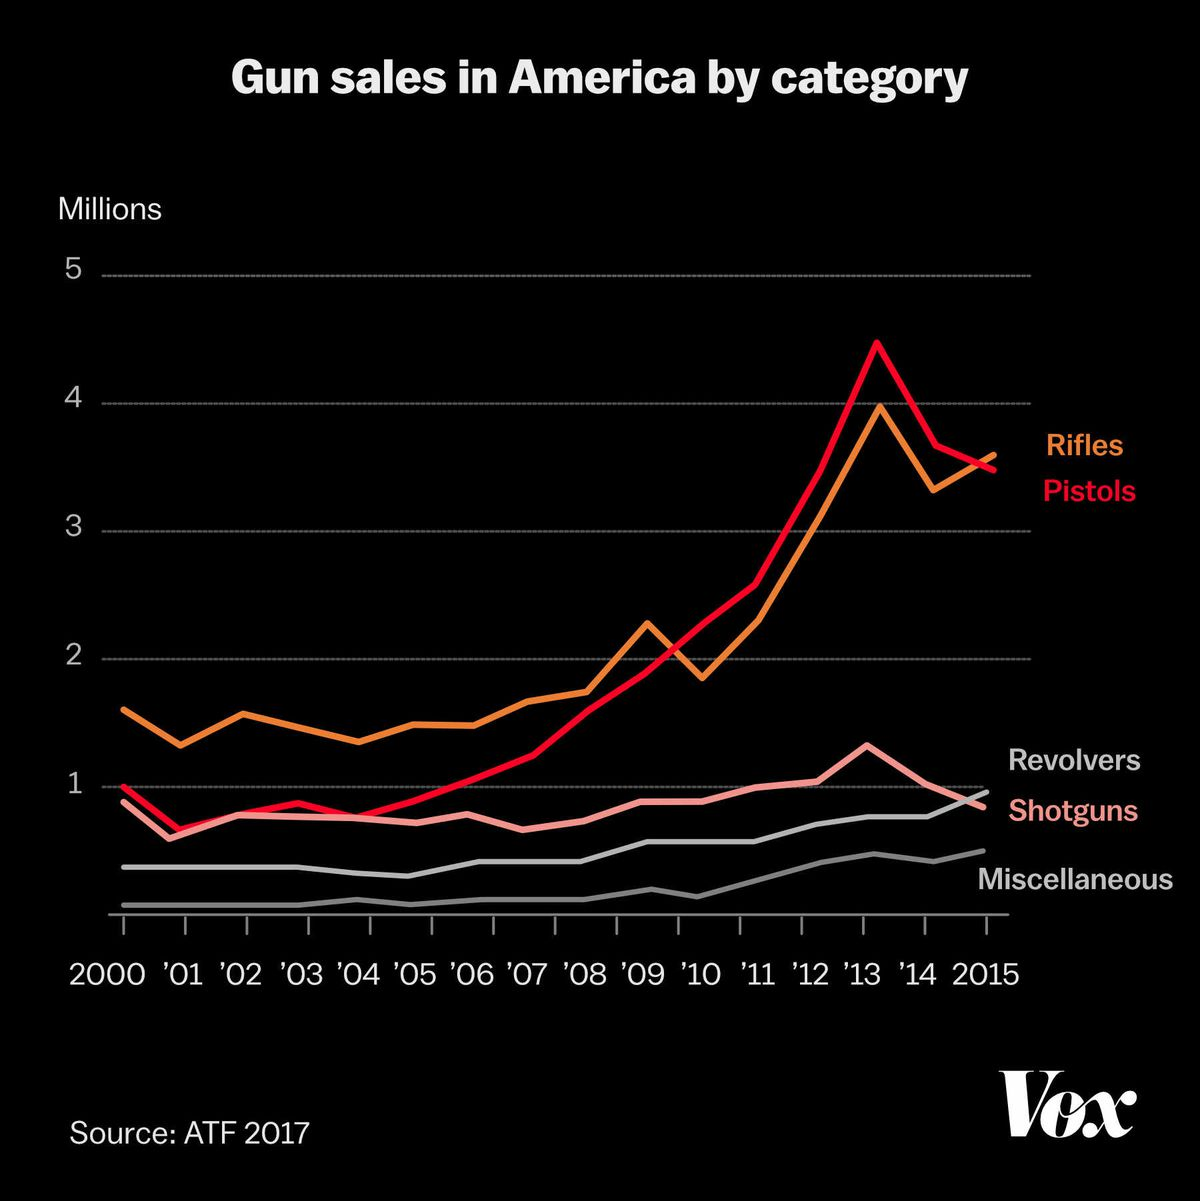 Chart of gun sales in America by category; rifles and pistols have dominated over revolvers and shotguns; the gap has widened in the past 10 years.